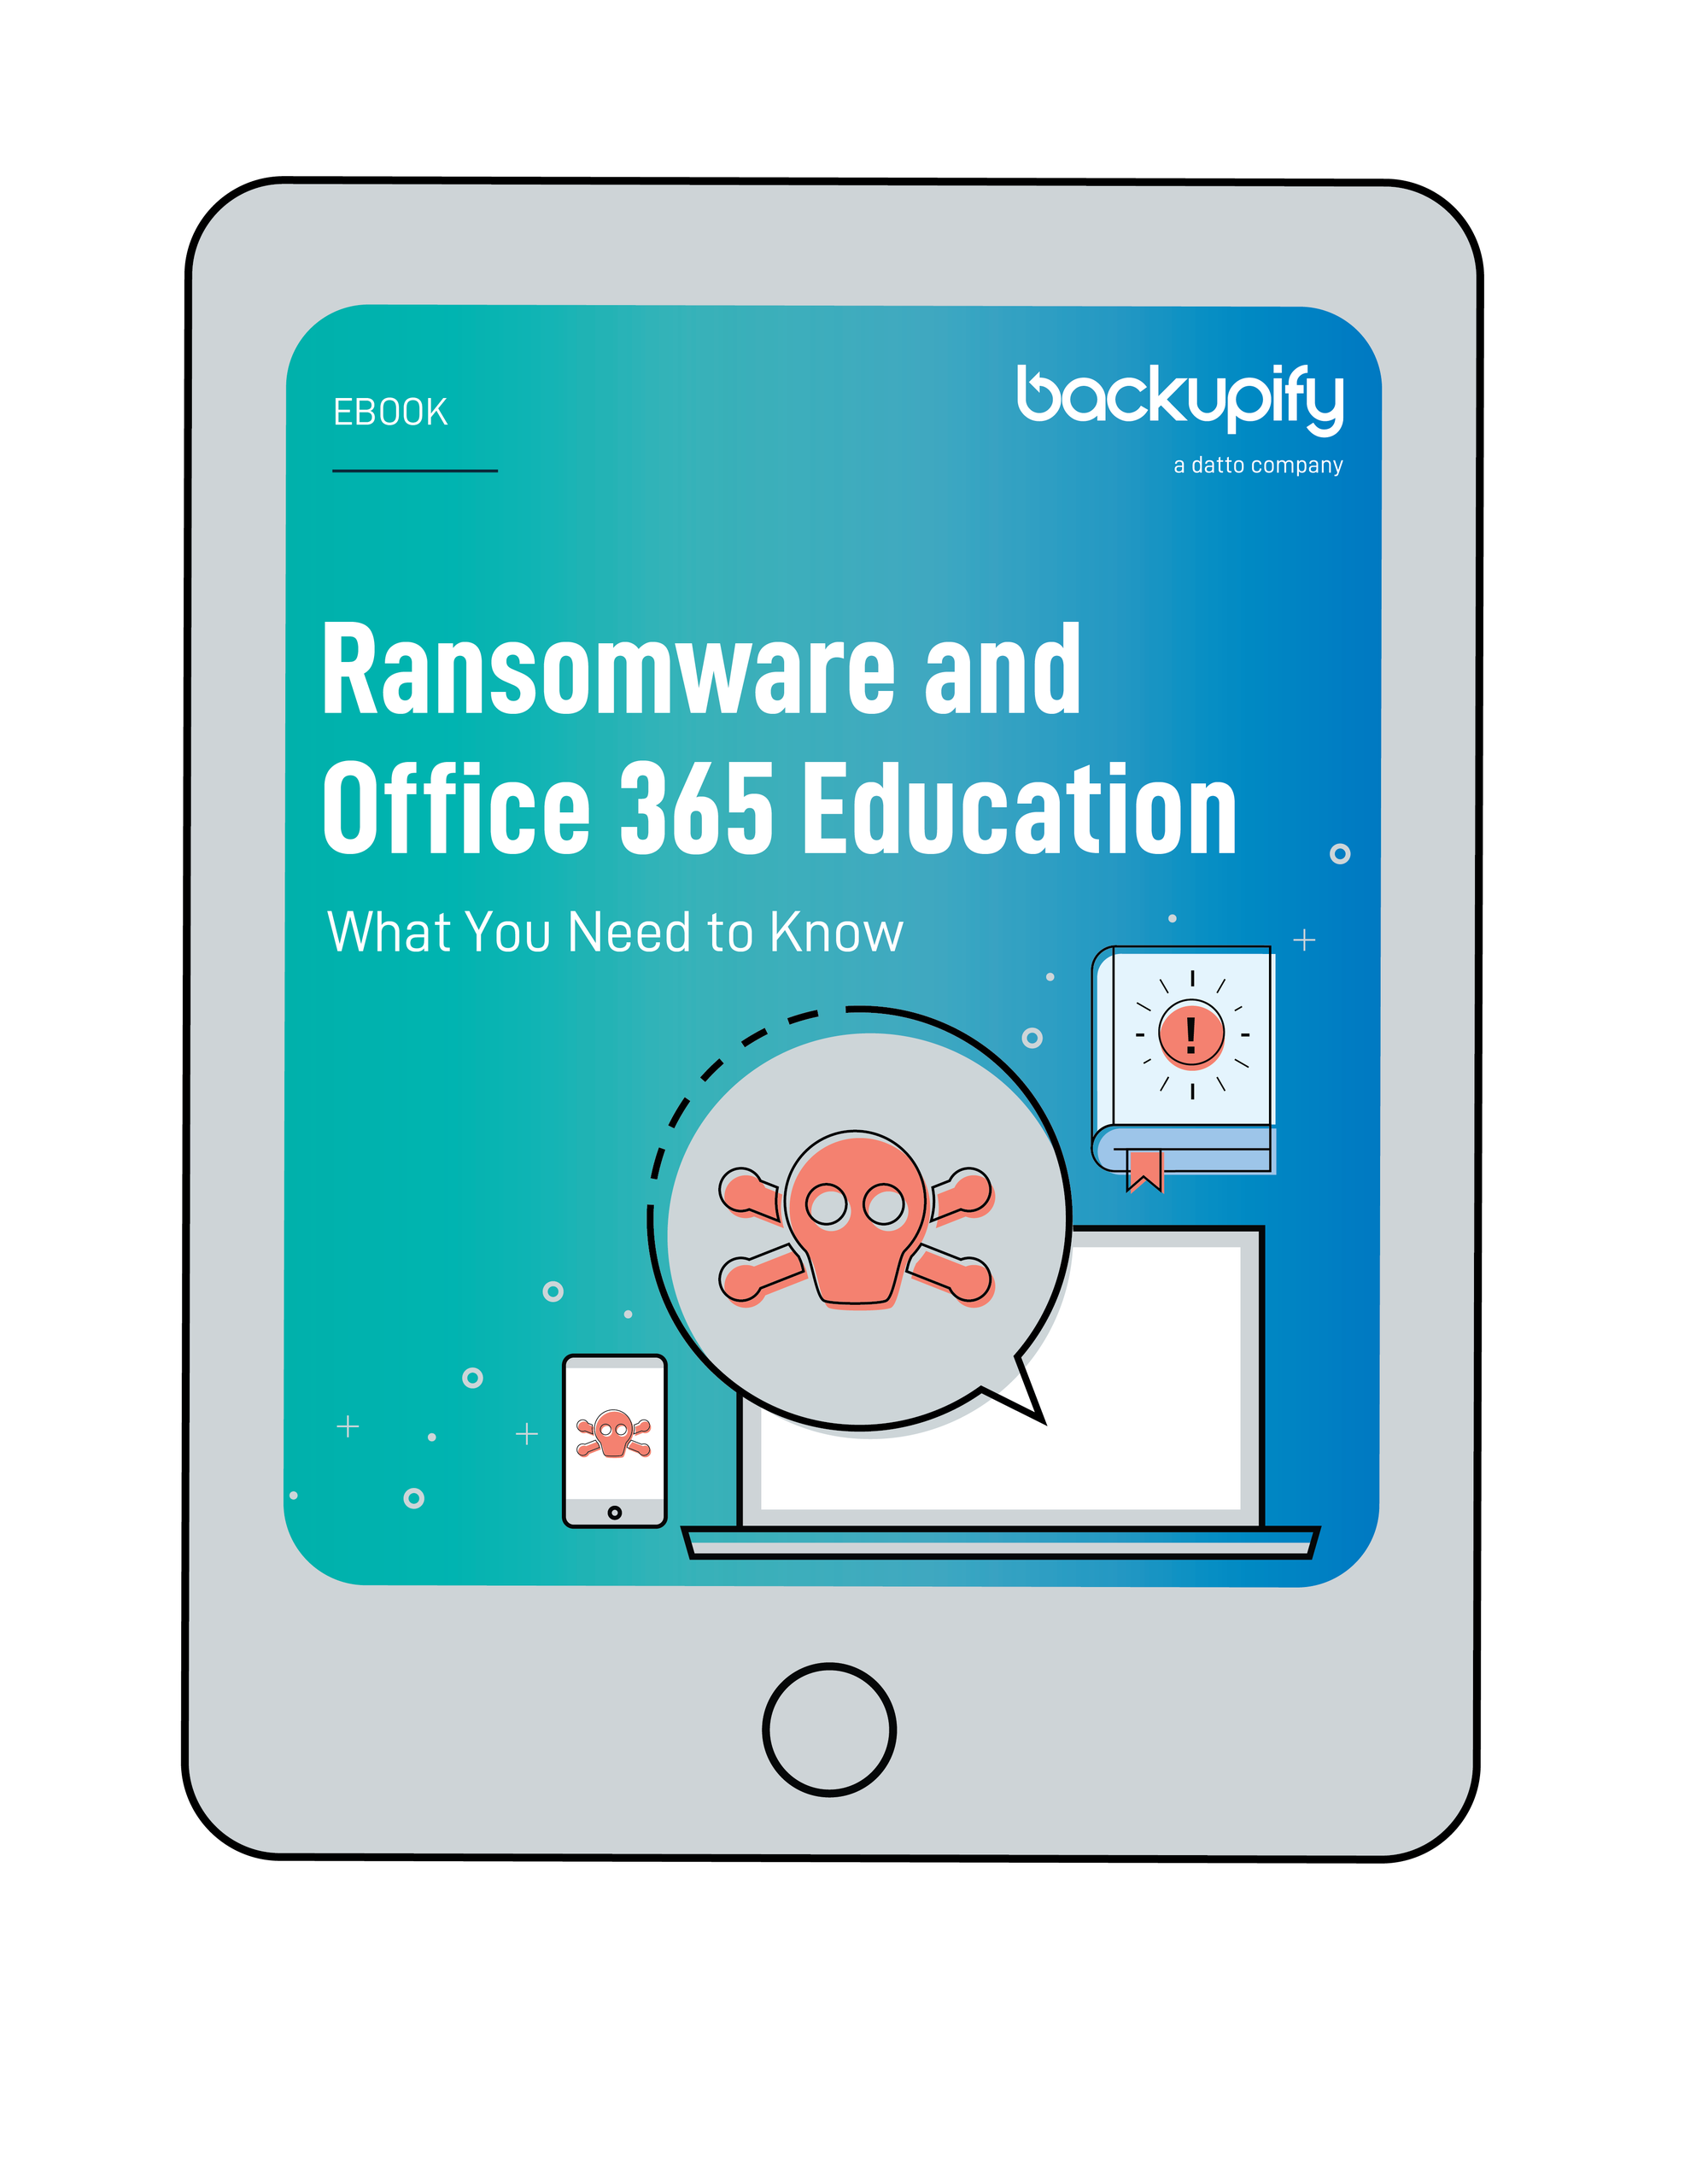 Ransomware and Office 365 Education: What You Need to Know